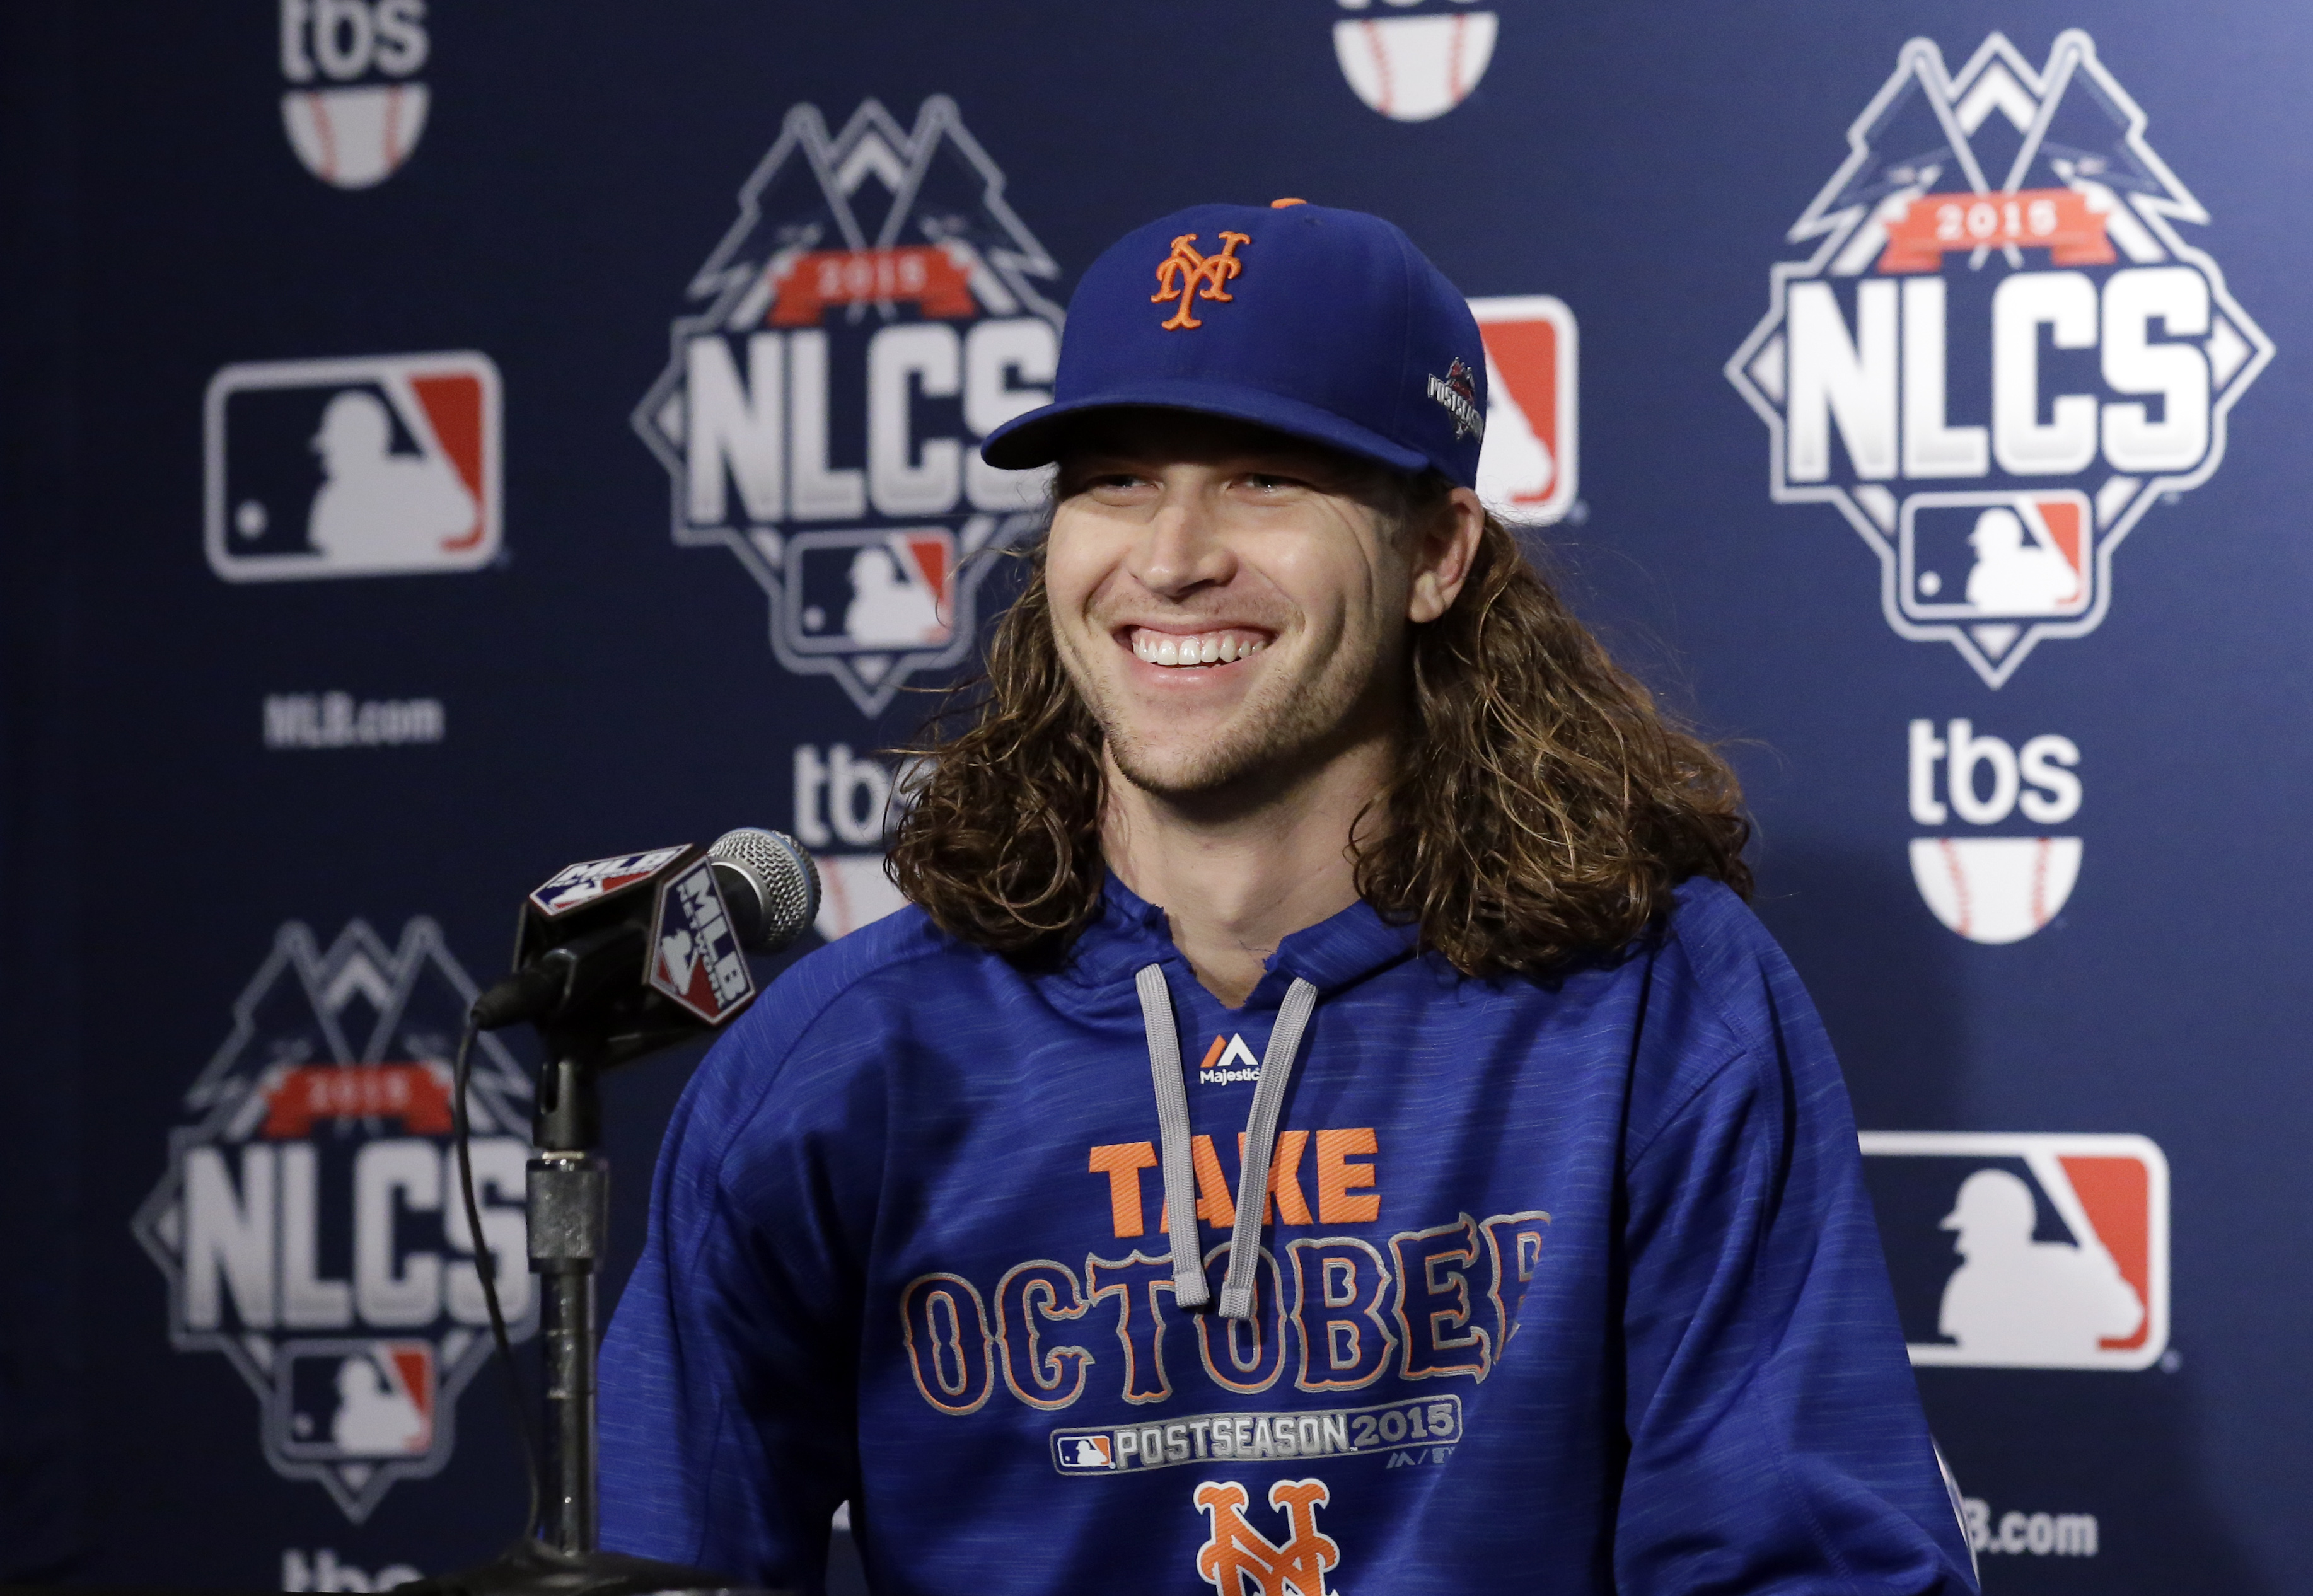 New York Mets pitcher Jacob deGrom talks at a news conference Monday, Oct. 19, 2015, during a team workout in preparation for Tuesday's Game 3 in baseball's National League Championship Series against the Chicago Cubs in Chicago. (AP Photo/Nam Y. Huh)